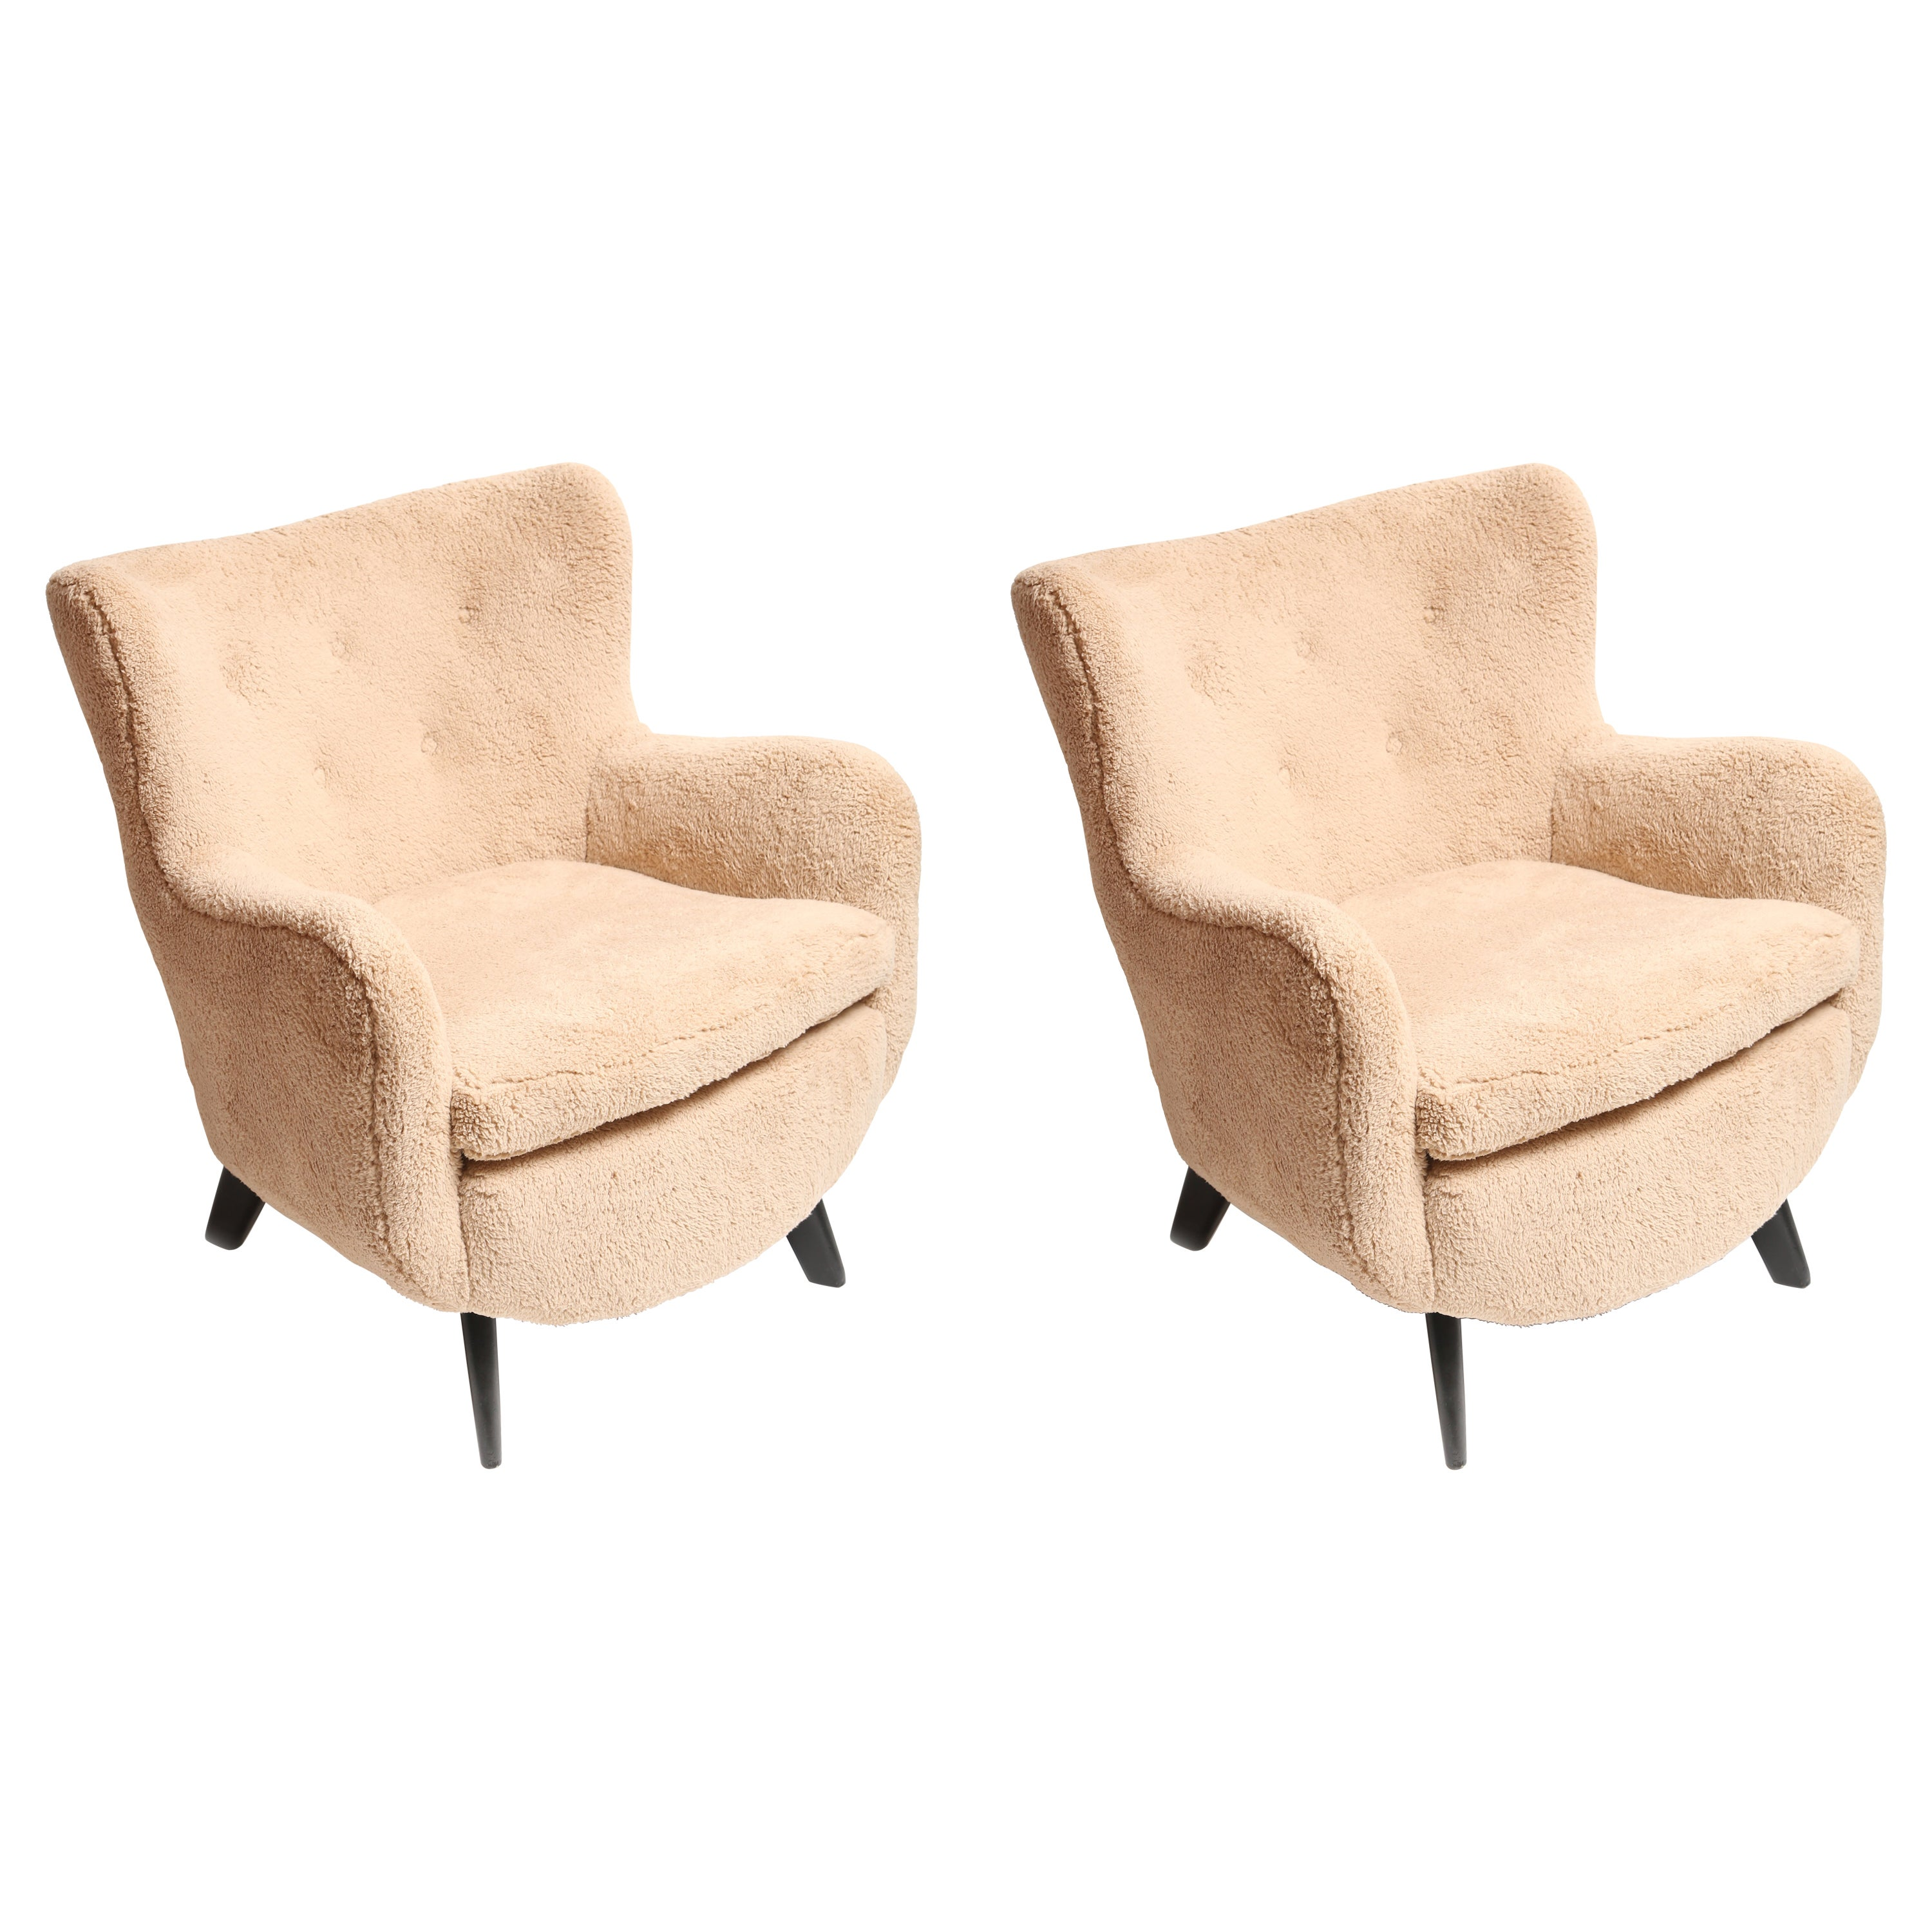 George Nelson Lounge Chairs Model #4688